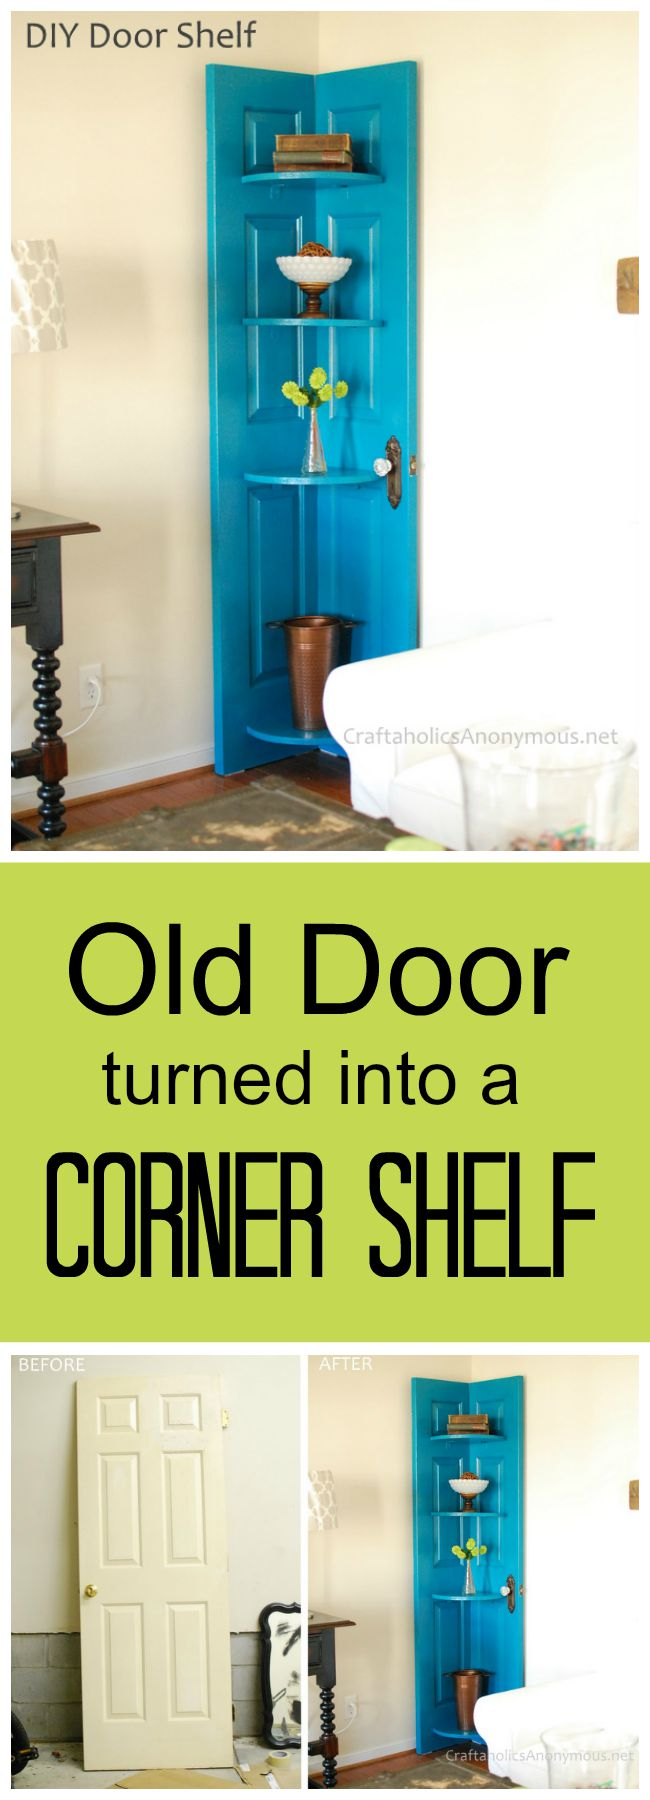 DIY Corner Shelf from an Old Door  Easy to Make DIY Home Decorating Ideas